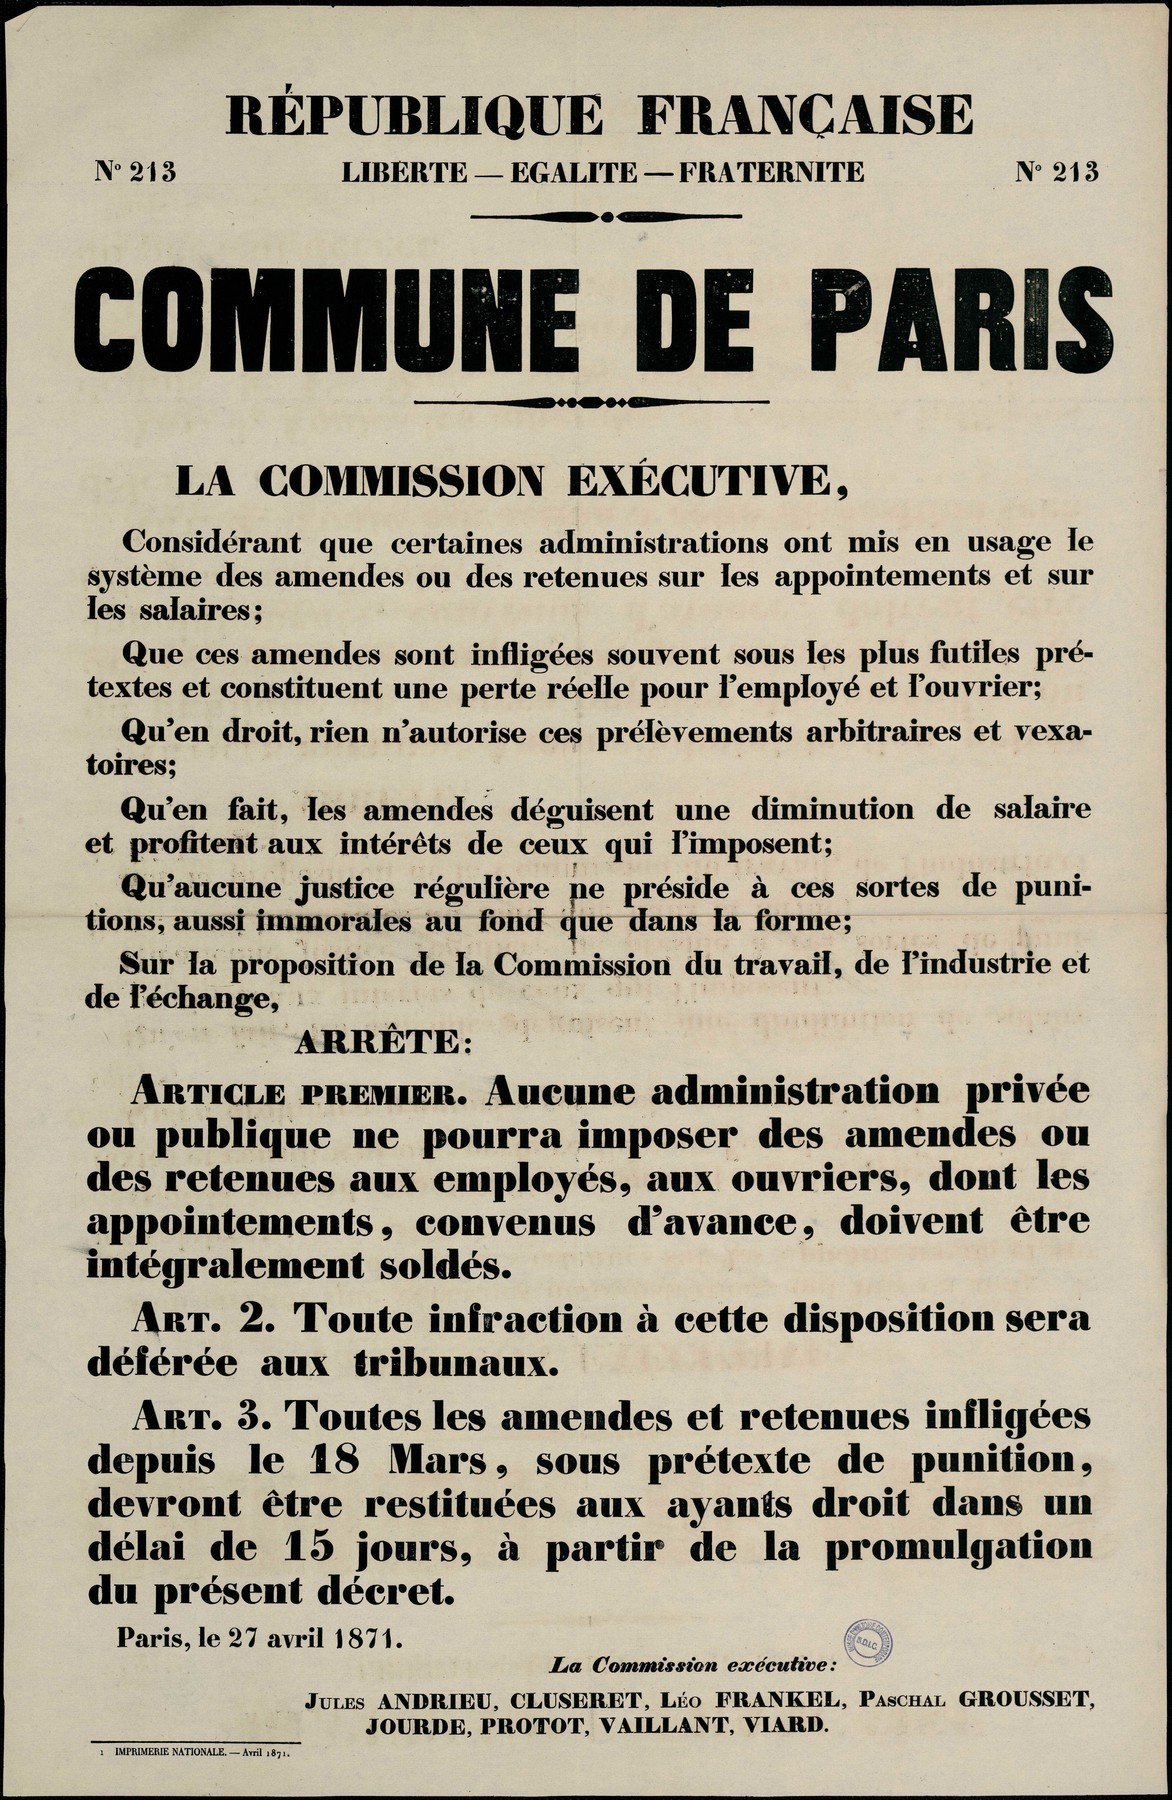 Affiche de la Commune de Paris N° 213 du 27 avril 1871 - Commission exécutive de la Commune